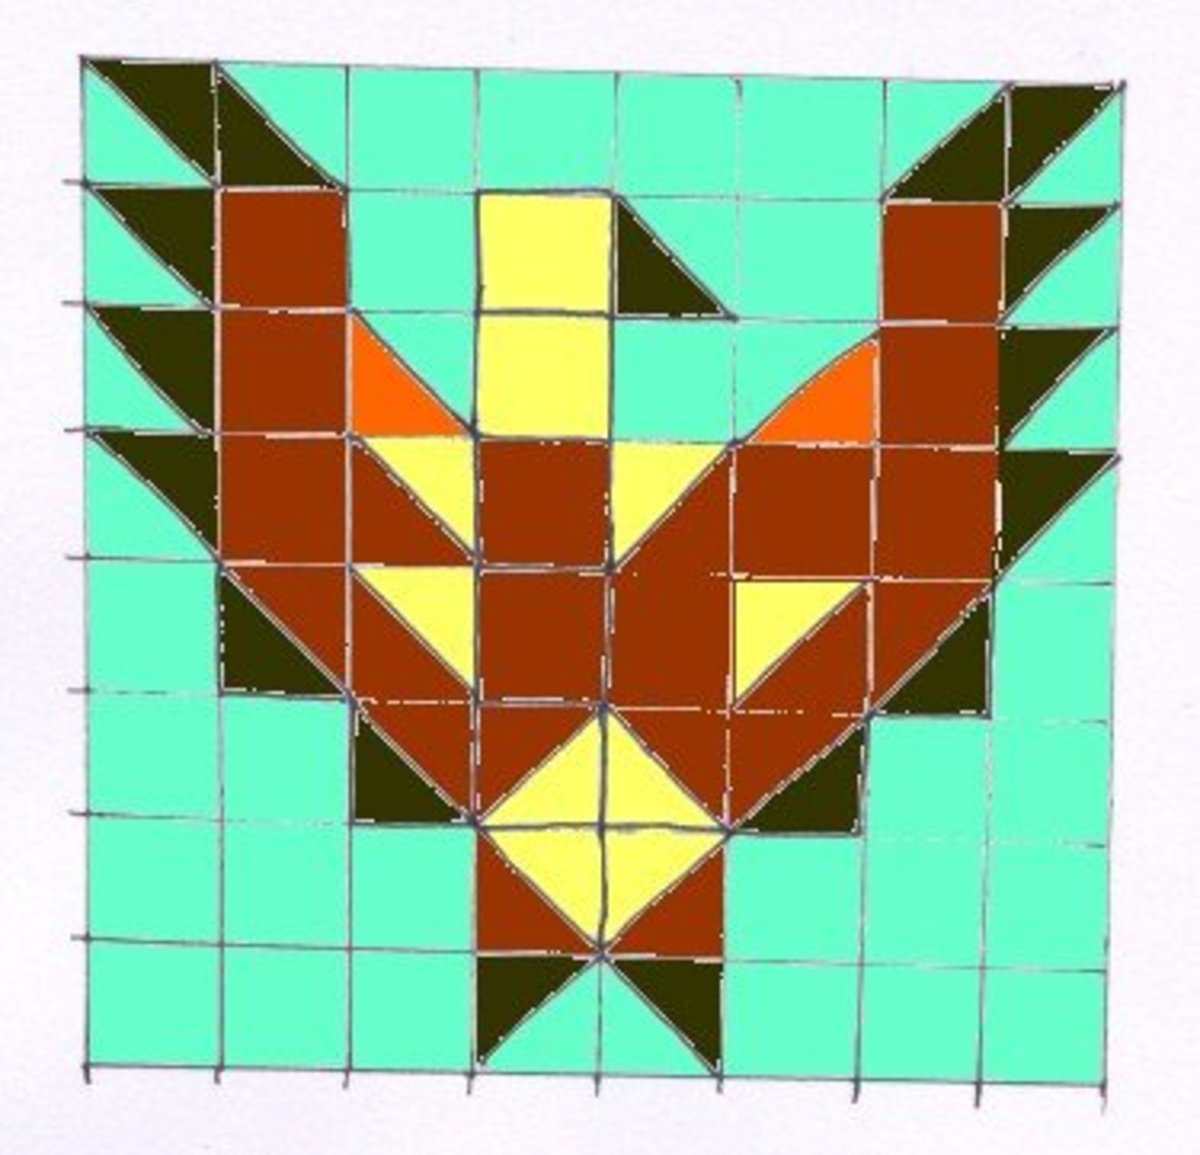 Patchwork Quilt Block Patterns Free : AMERICAN PATCHWORK PATTERNS Free Patterns